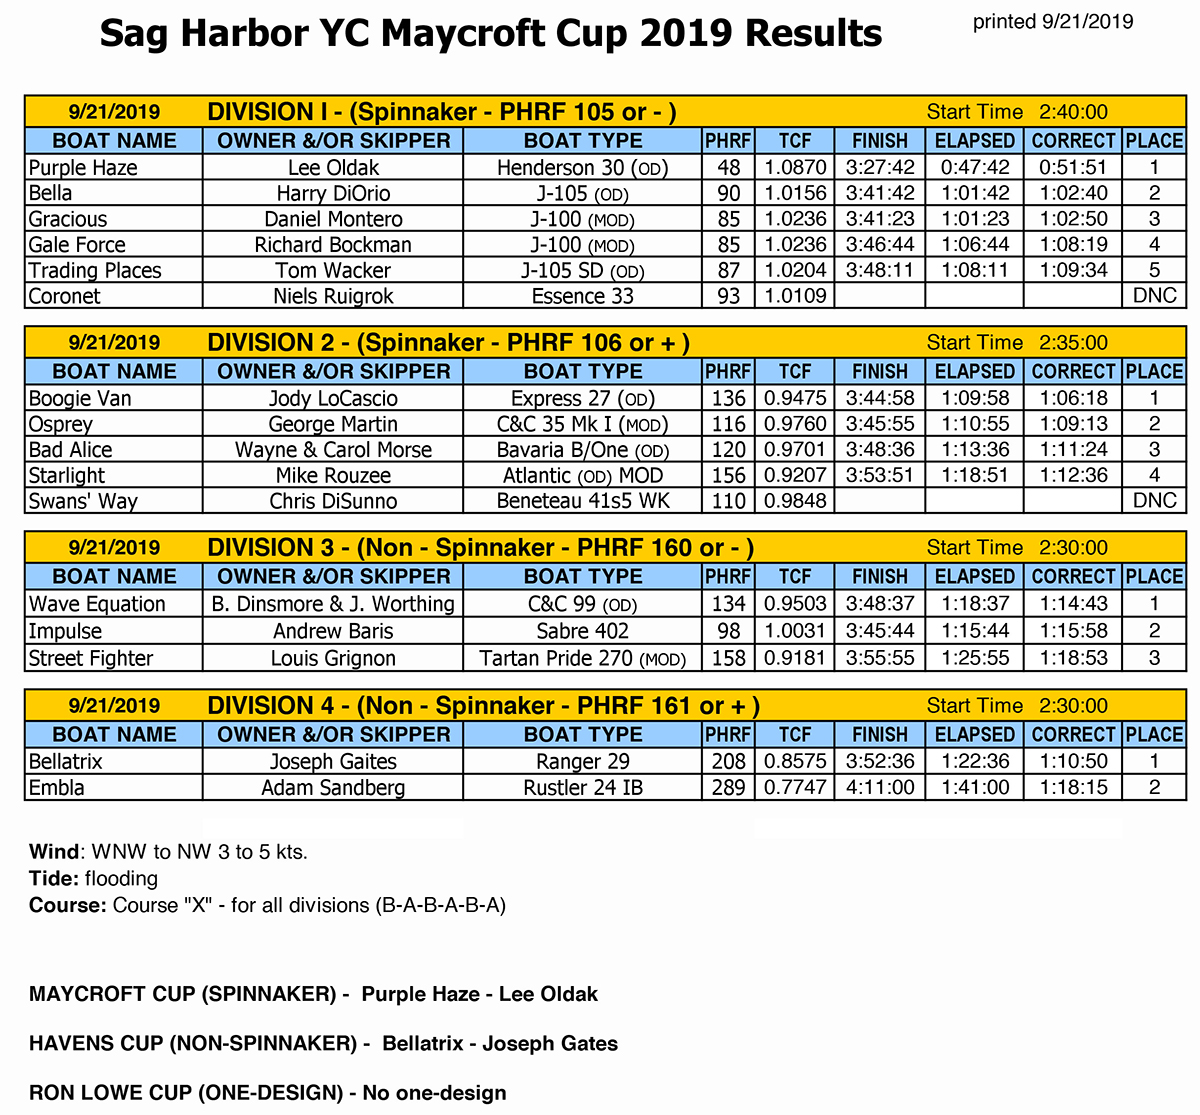 Maycroft Cup 2019 Scoring Results FINAL